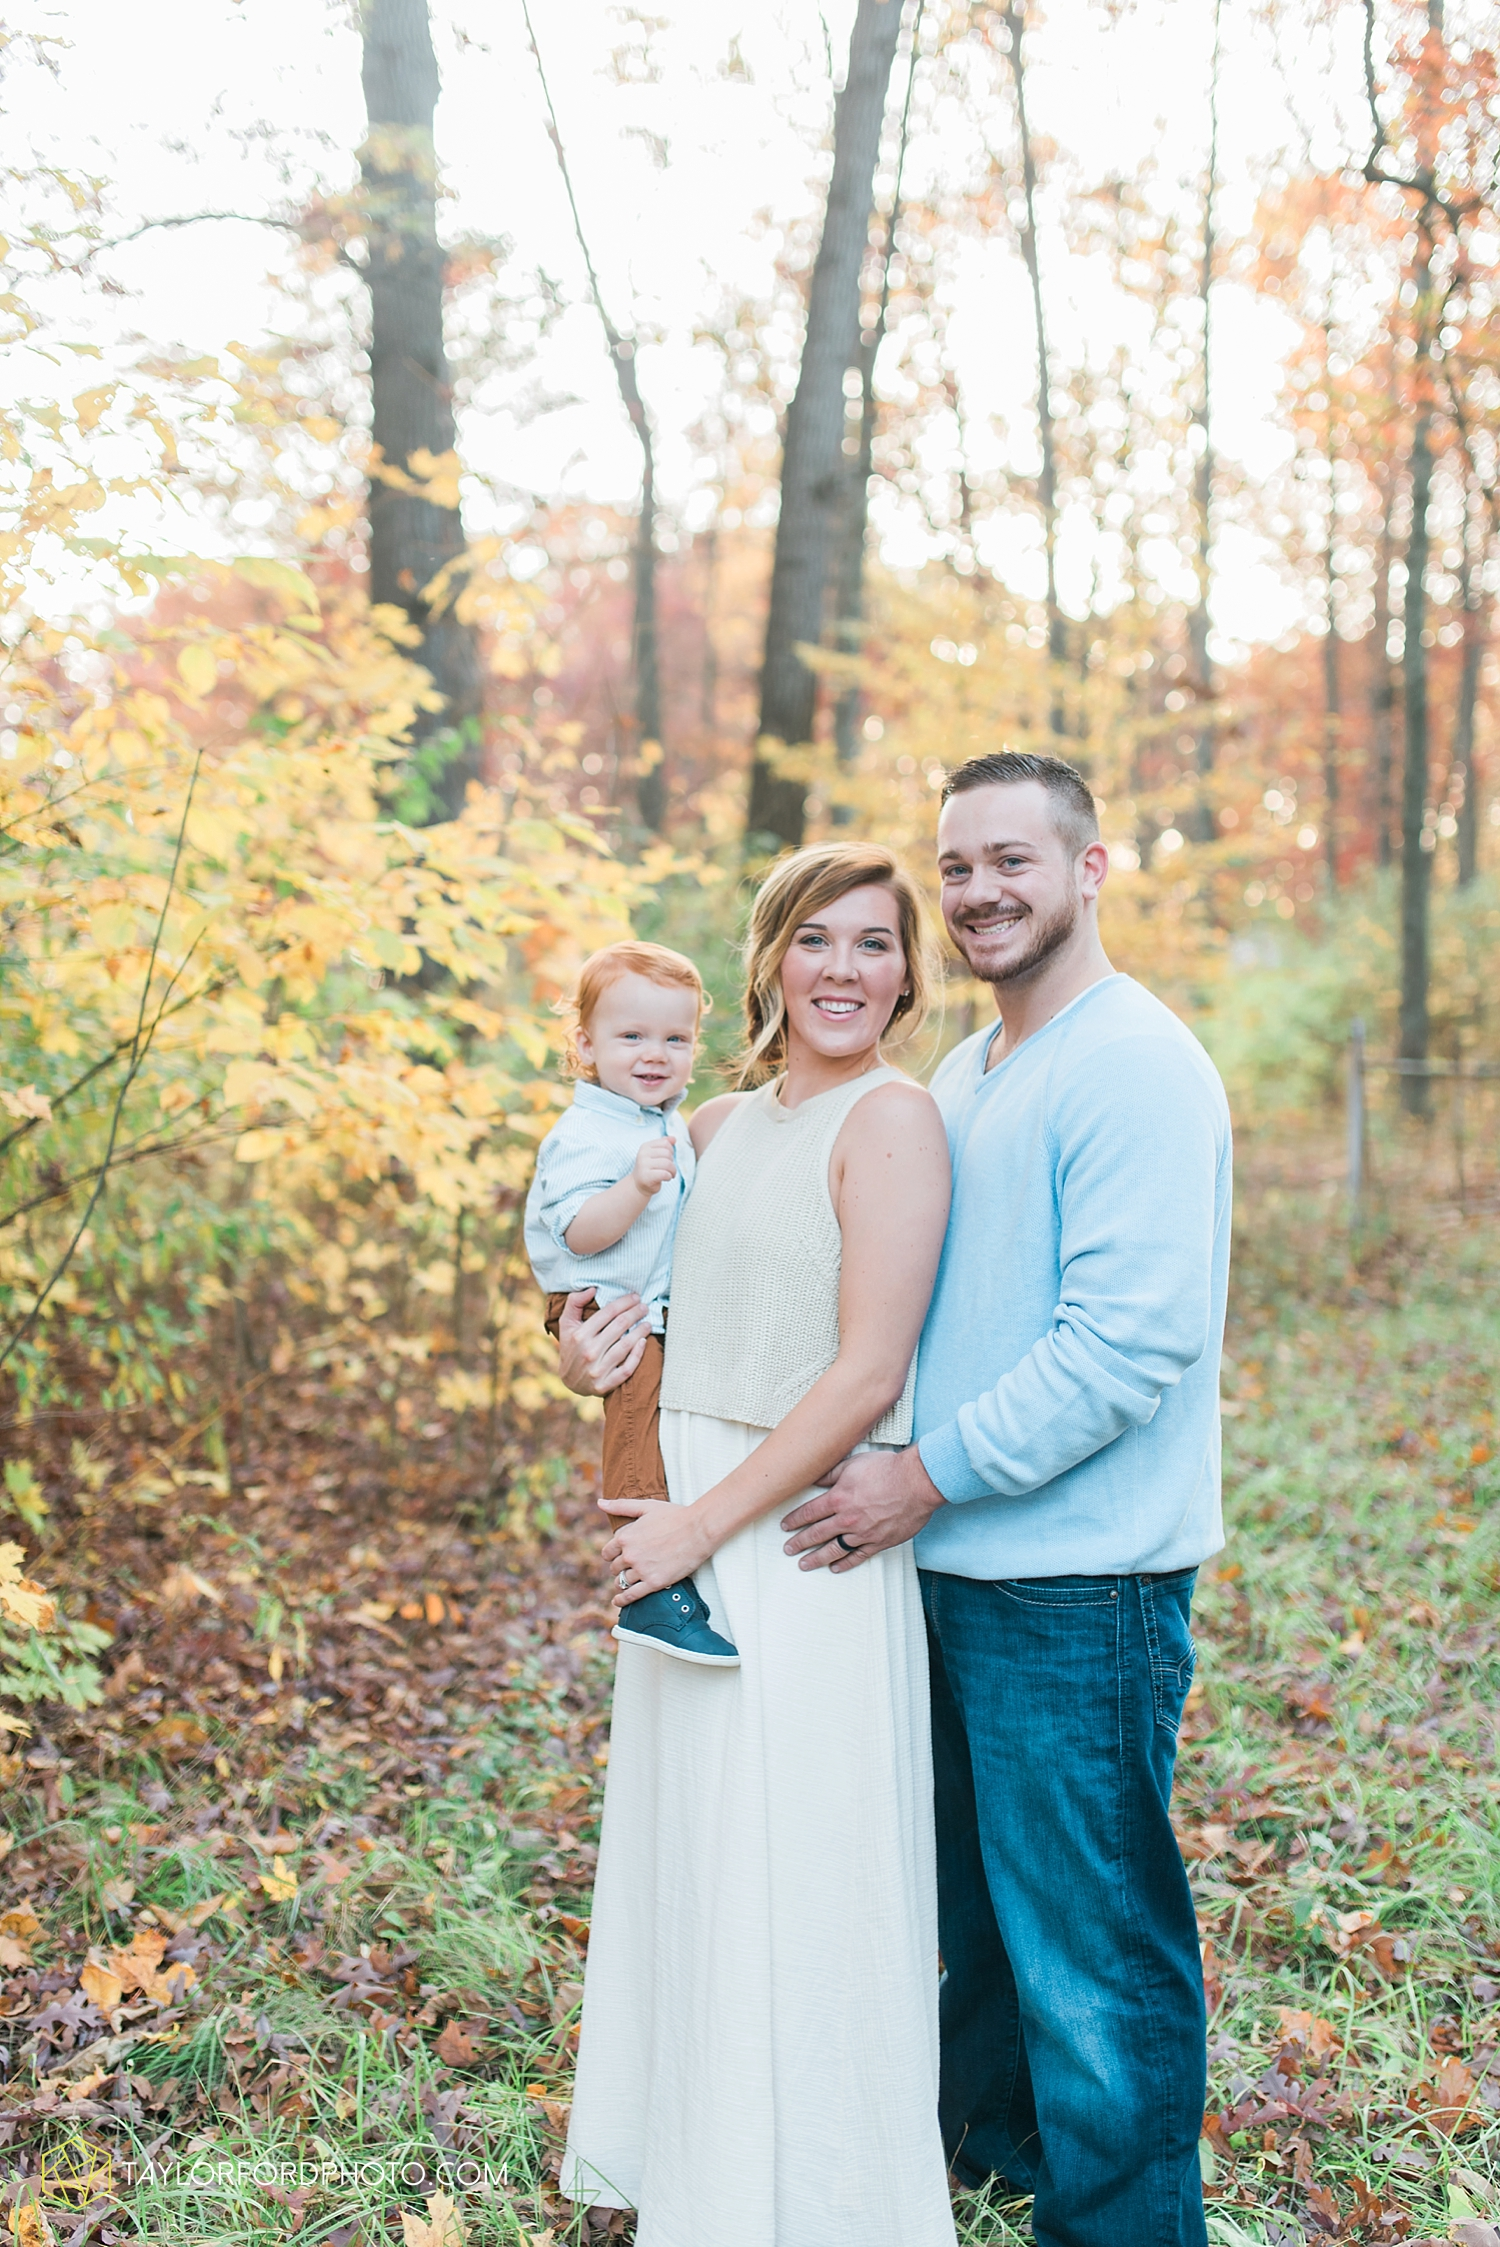 huntertown_indiana_family_photographer_taylor_ford_3608.jpg